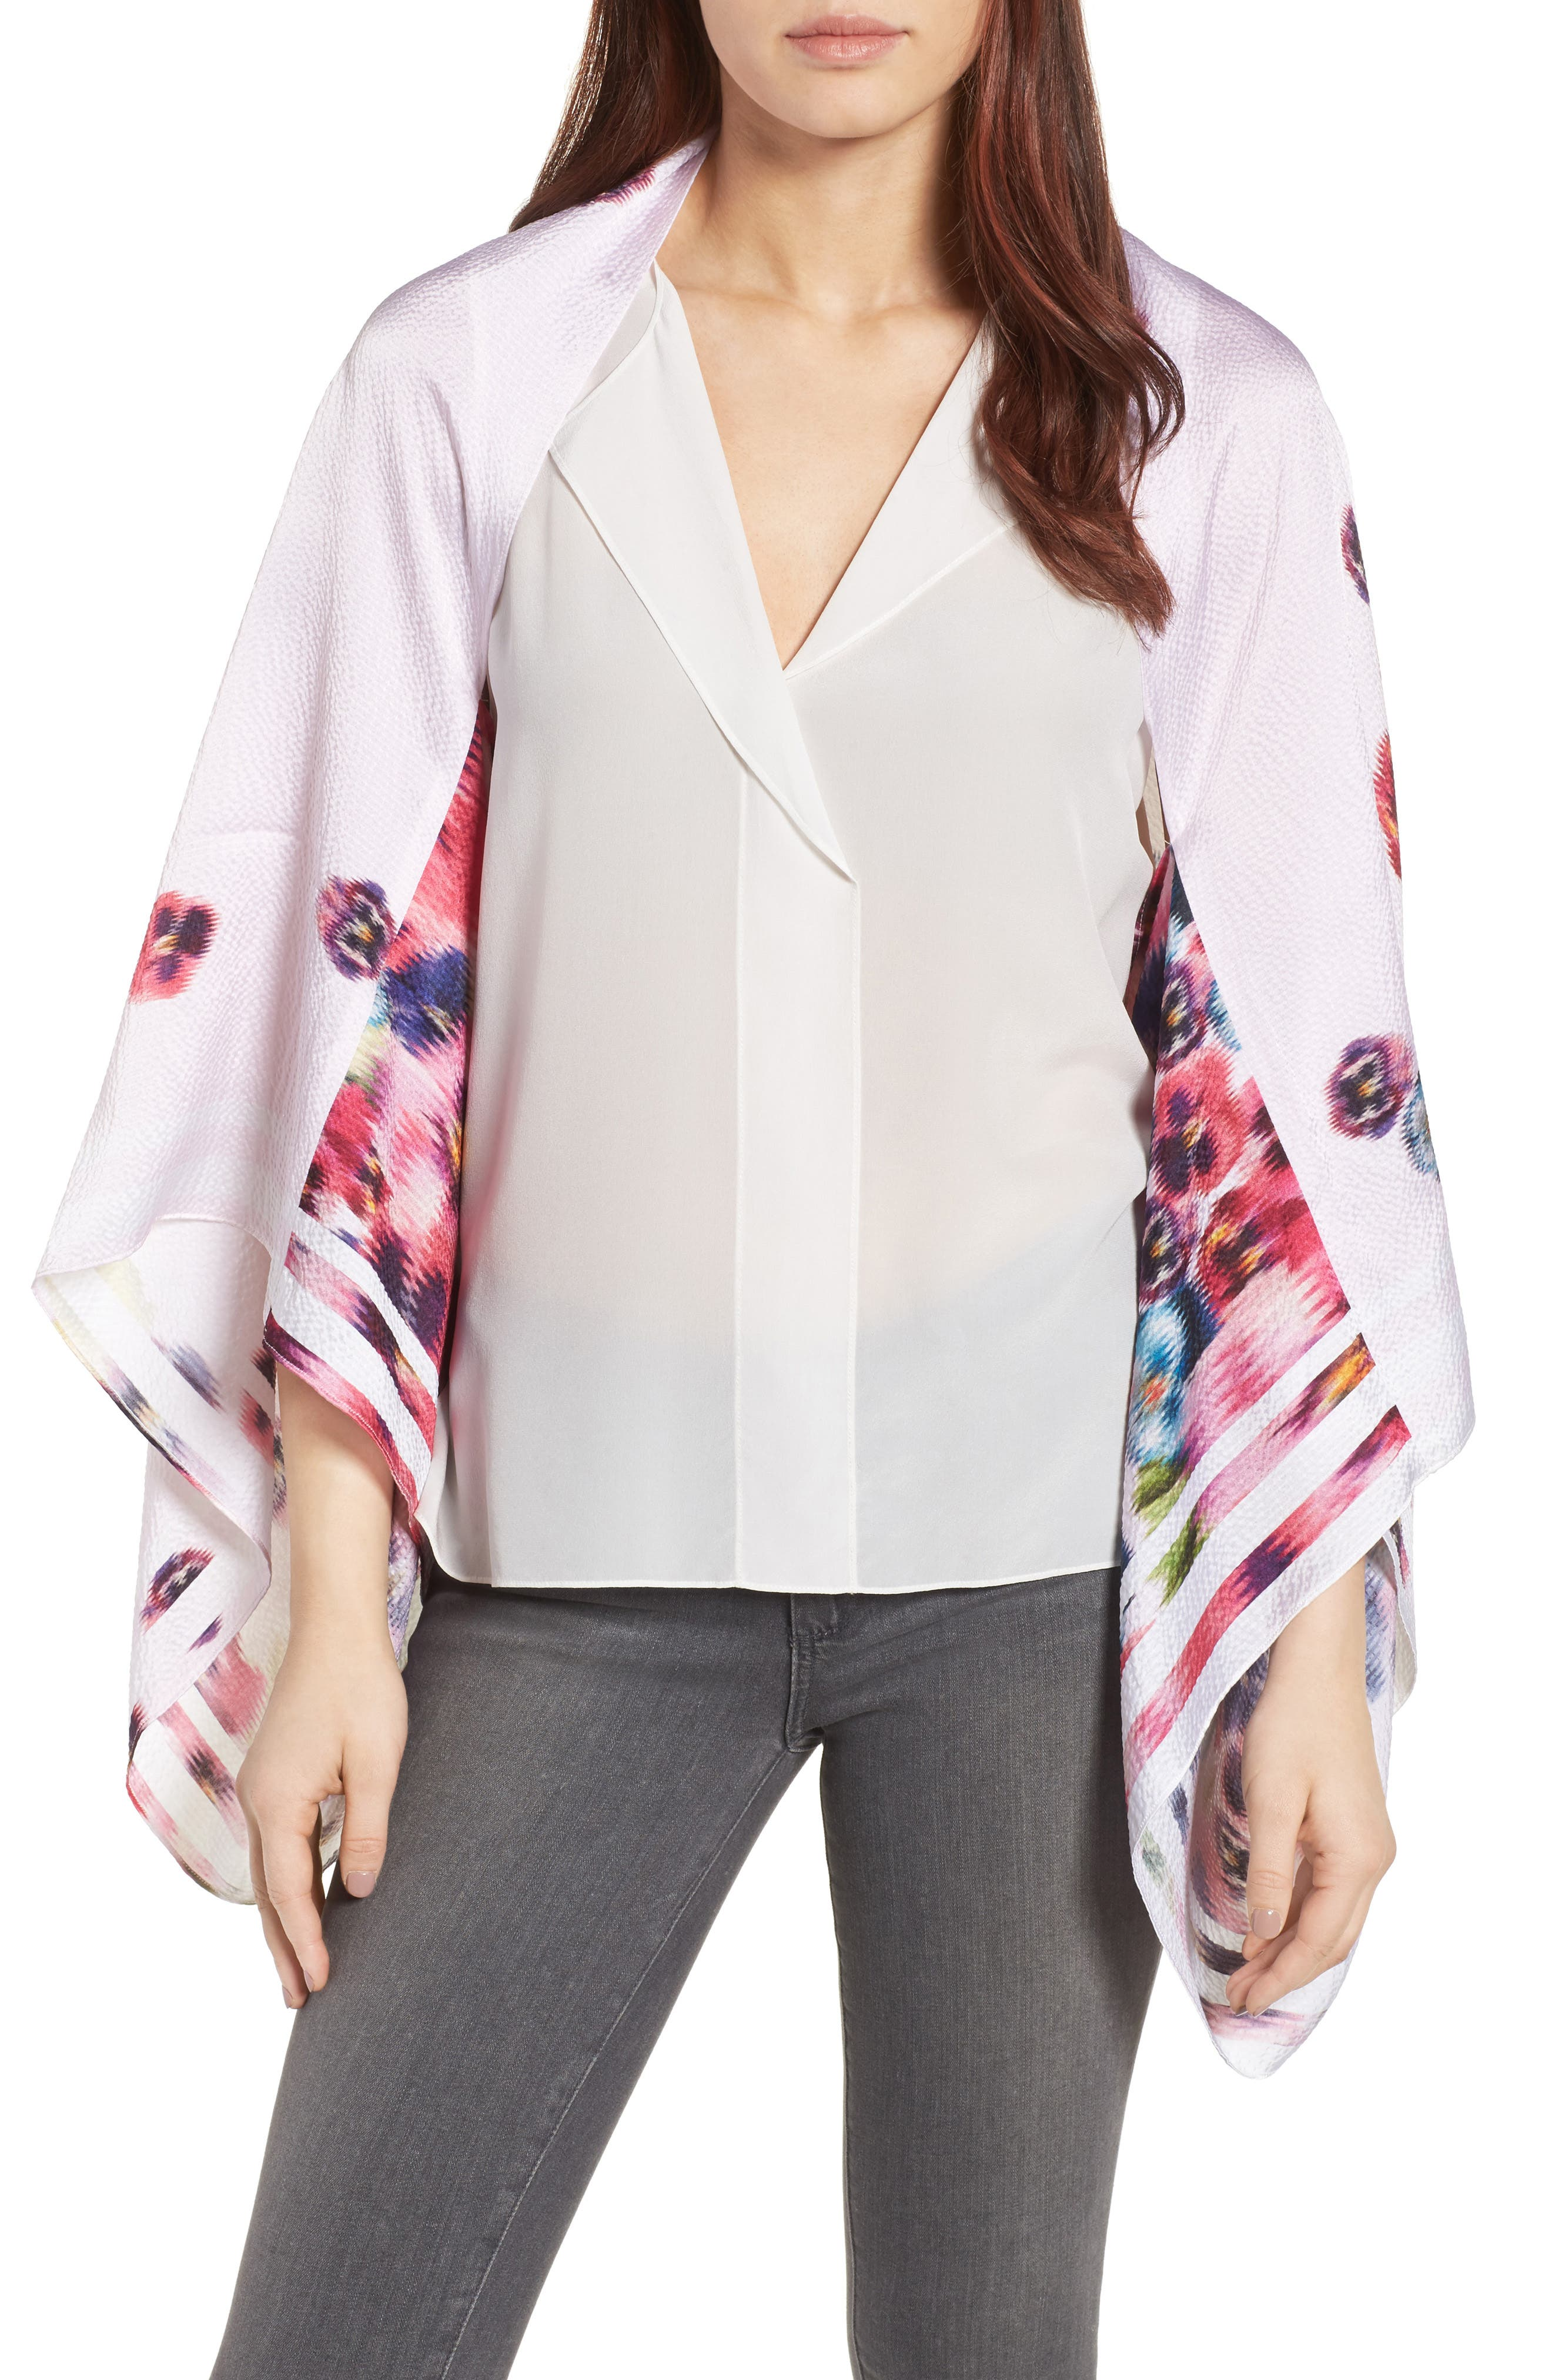 Ellila Expressive Pansy Floral Cape Scarf,                         Main,                         color, Baby Pink